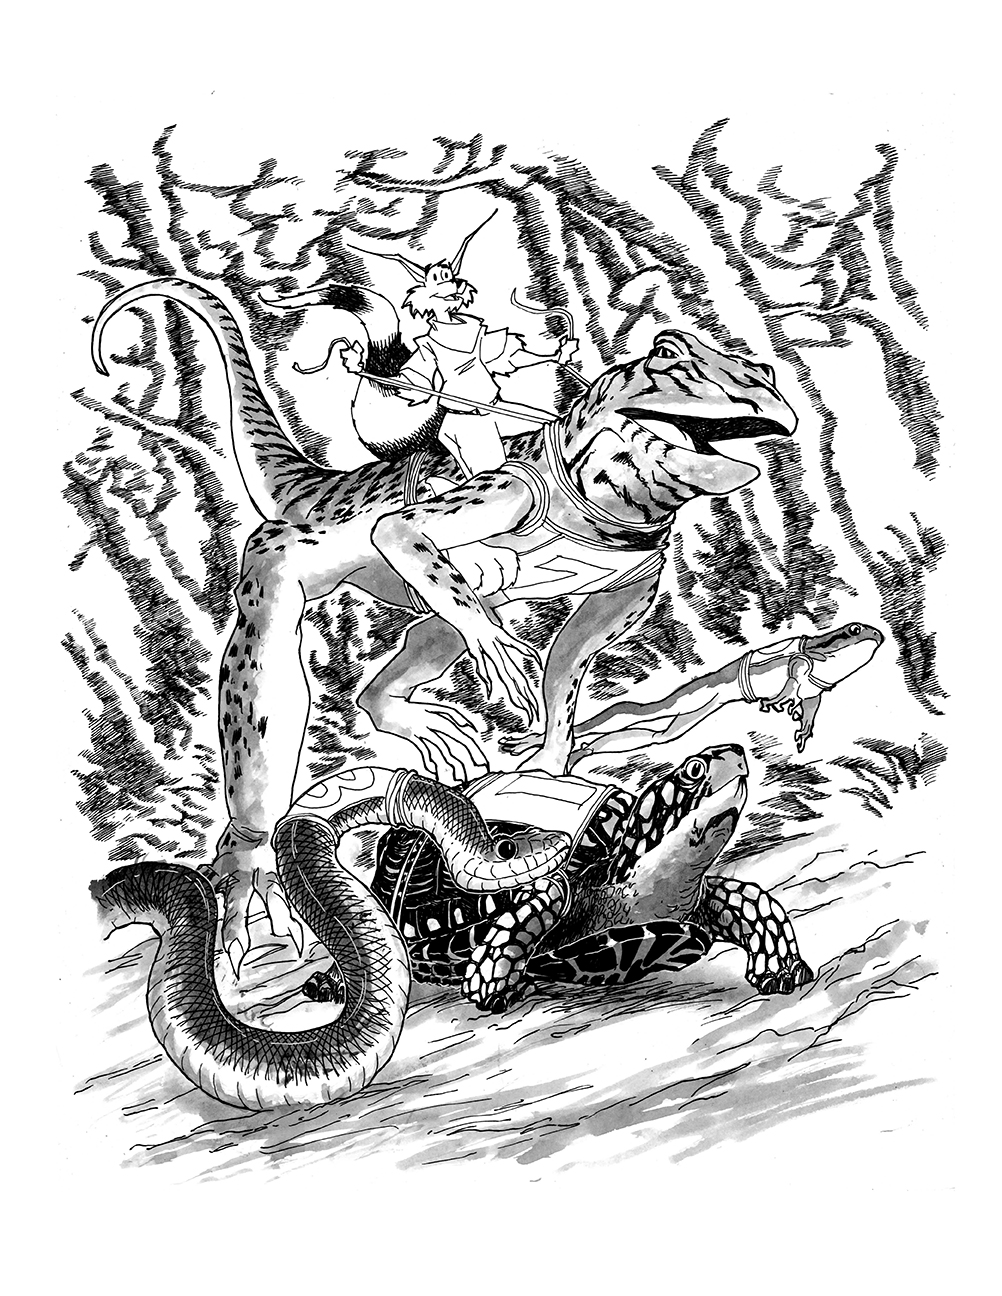 HERO Book One Pinup REPTILE RACE